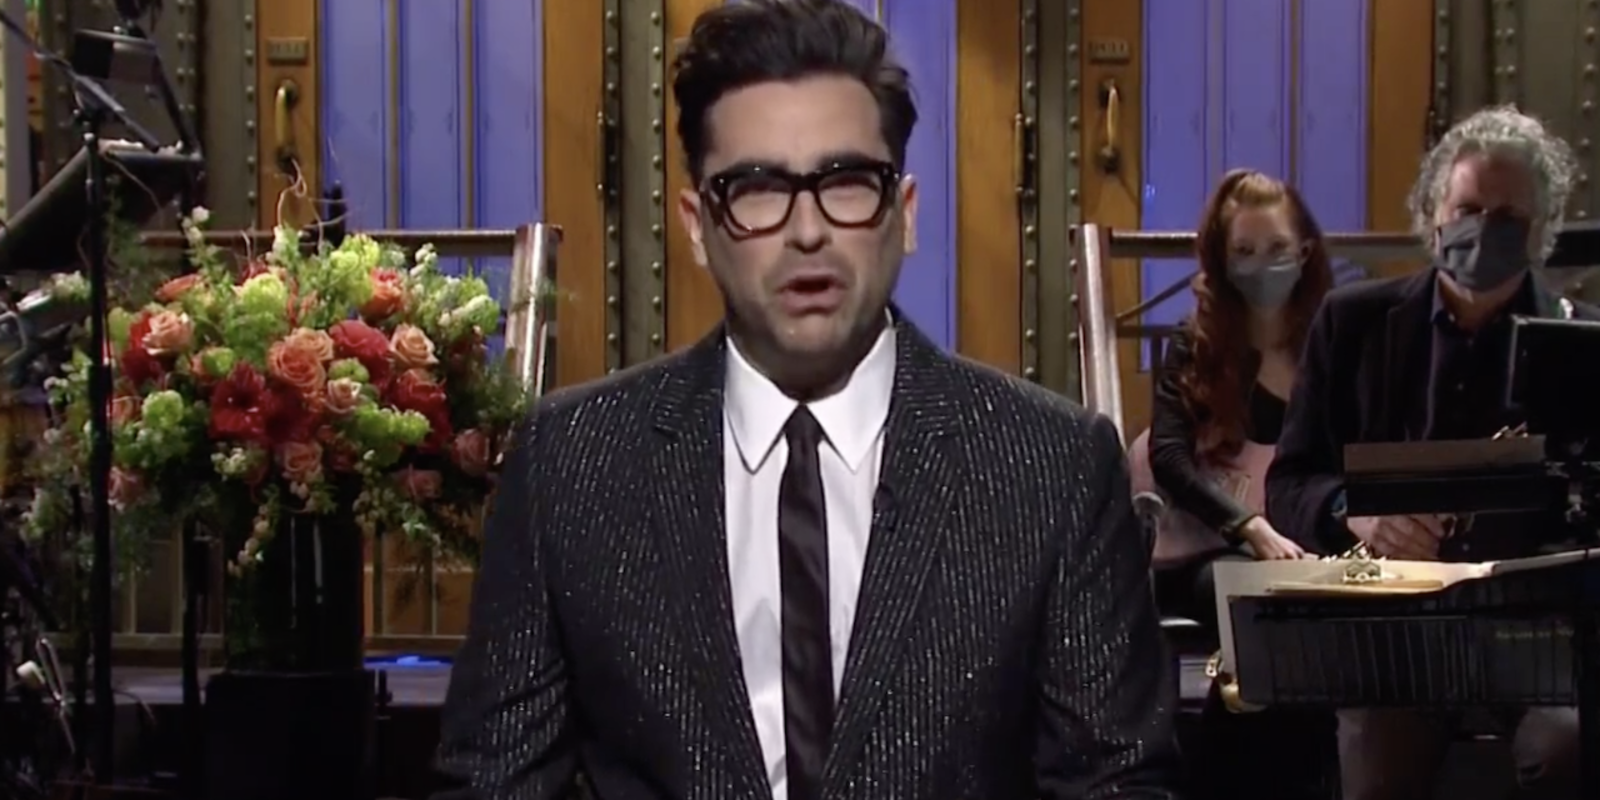 Dan Levy inspired a new trend among 'SNL' hosts that's still going strong